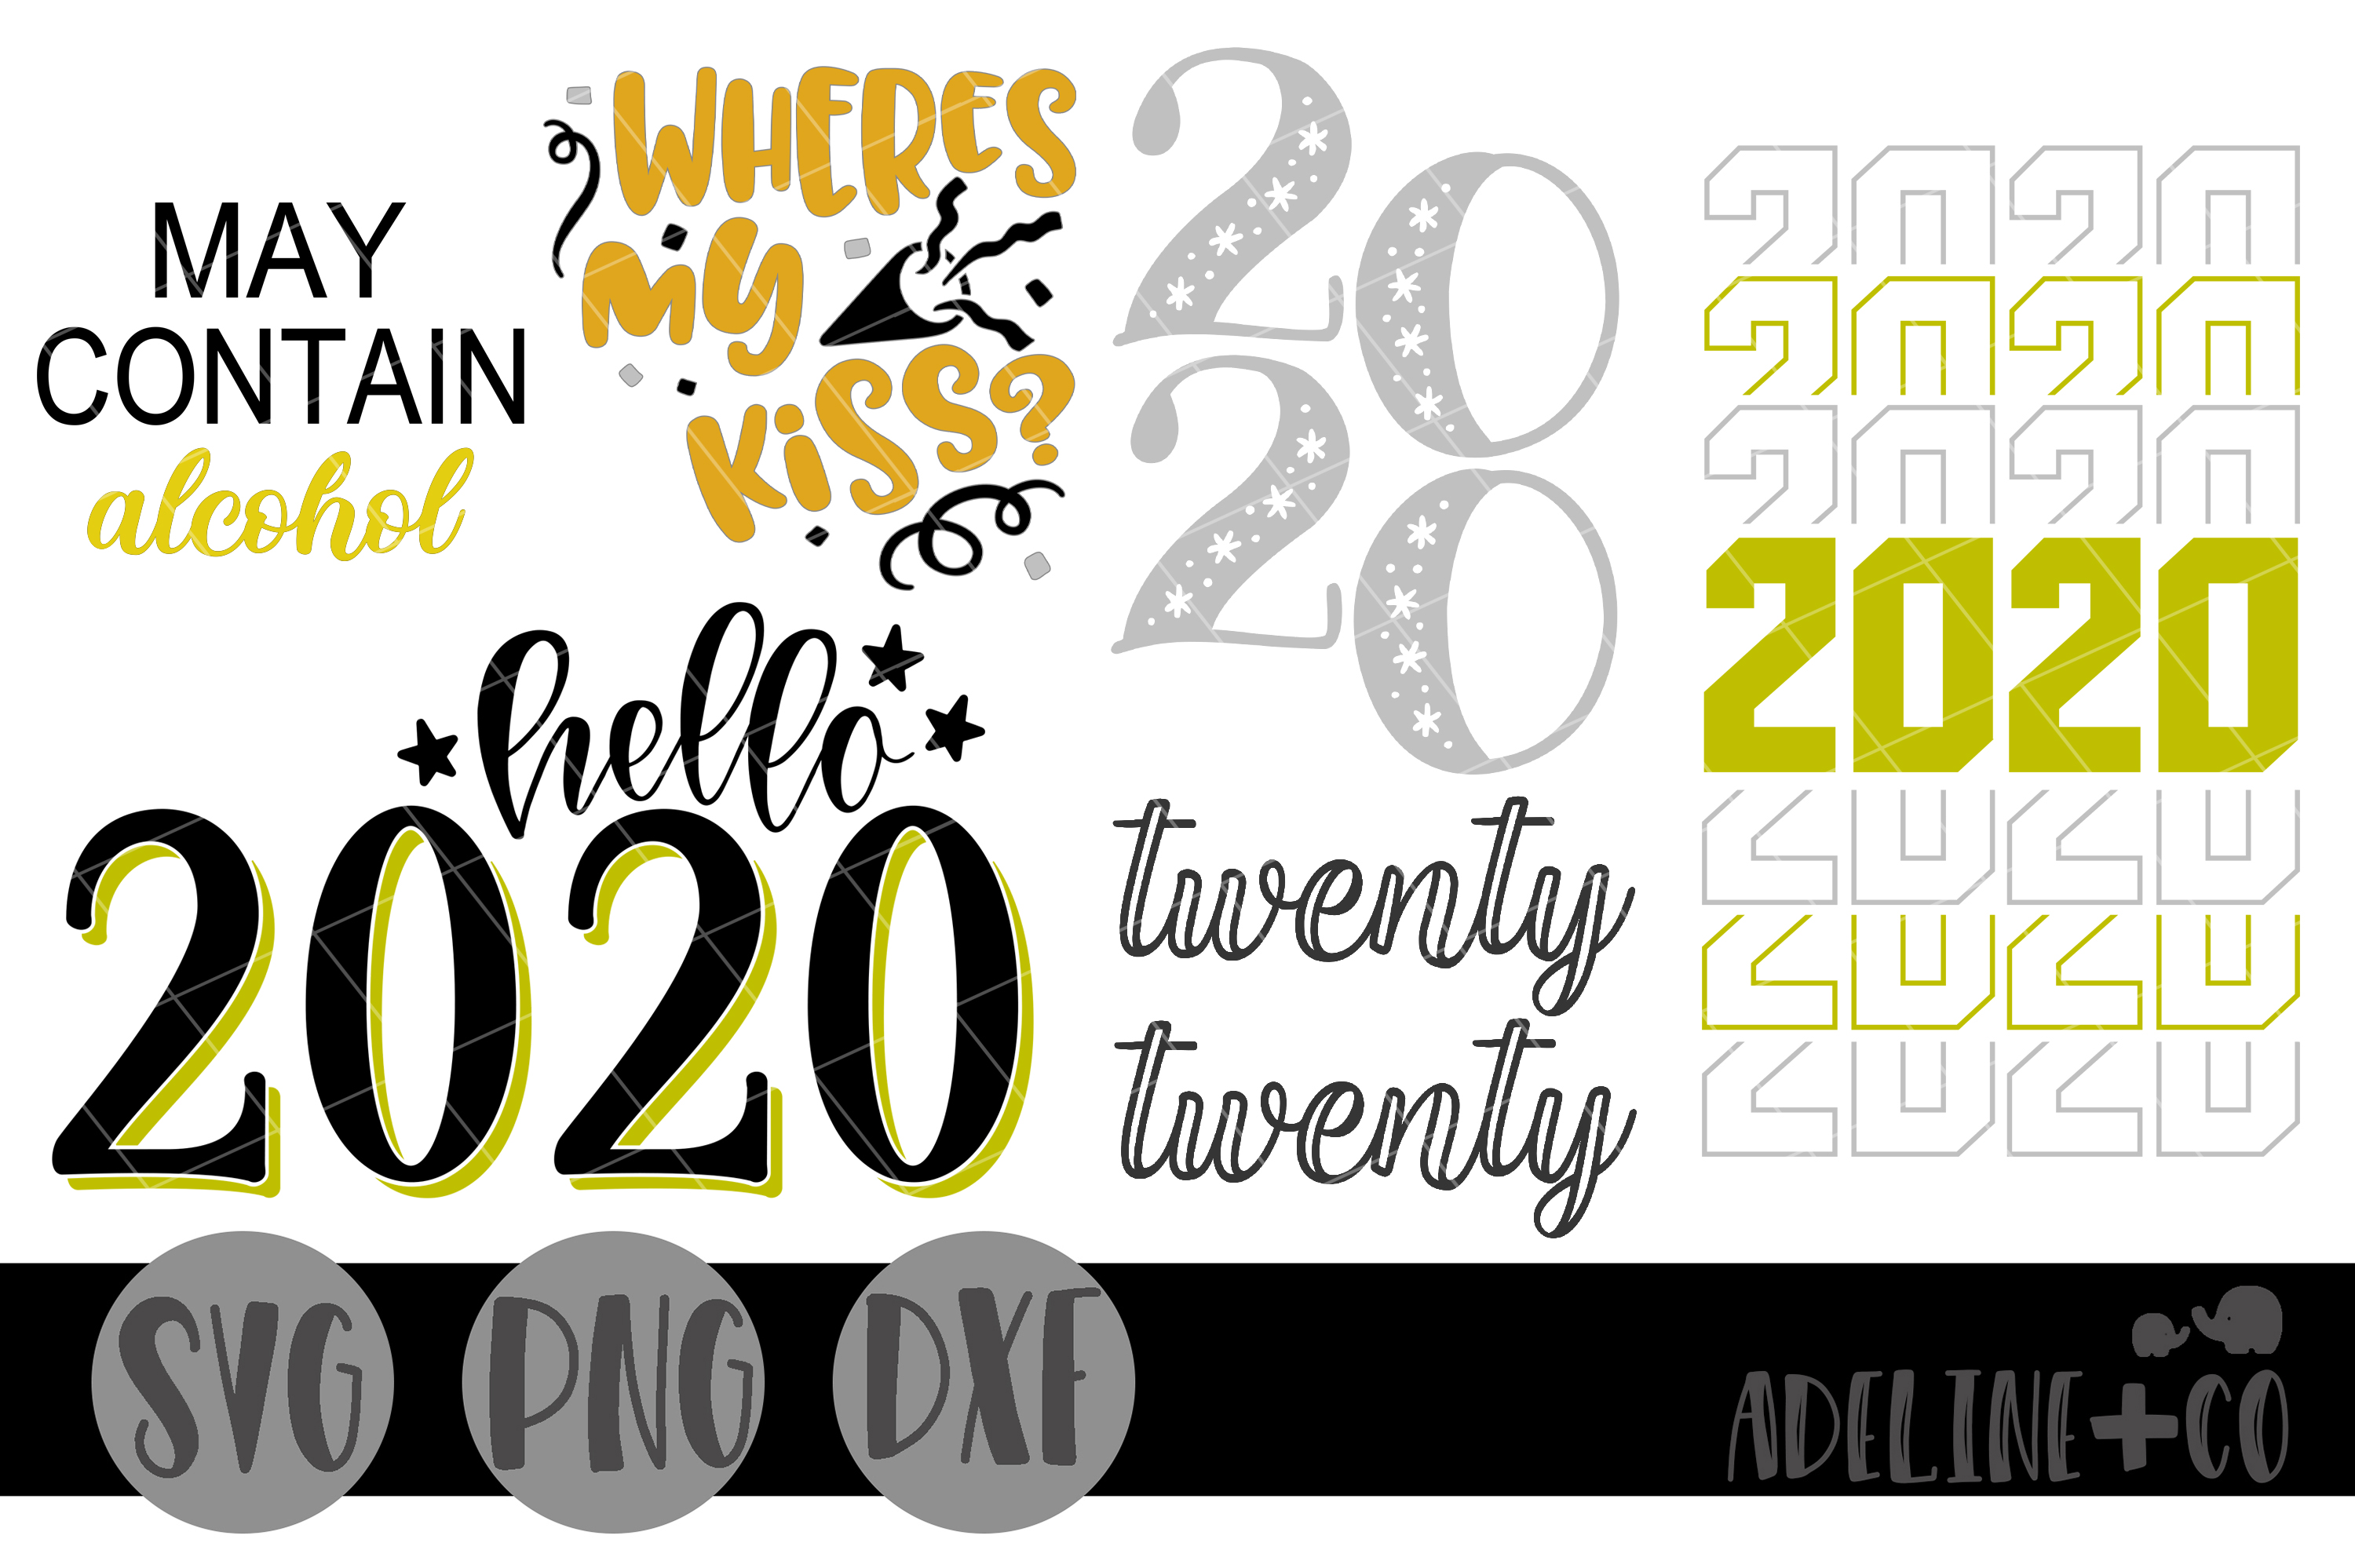 New Years bundle SVG PNG DXF example image 1